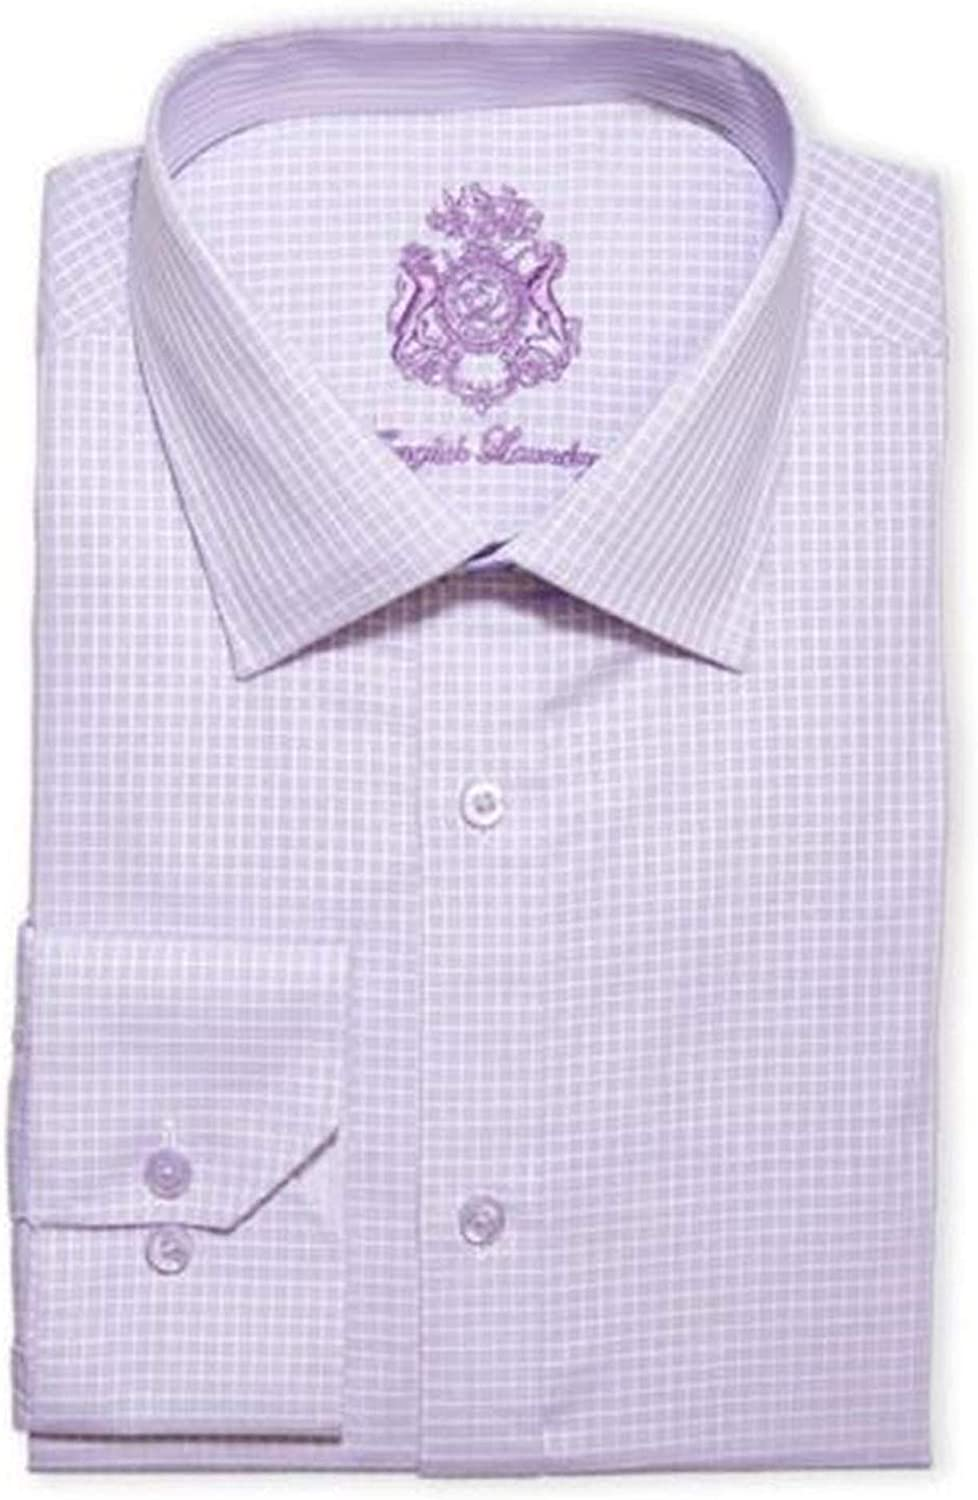 English Laundry Men's Dress Shirt Stretch Cotton